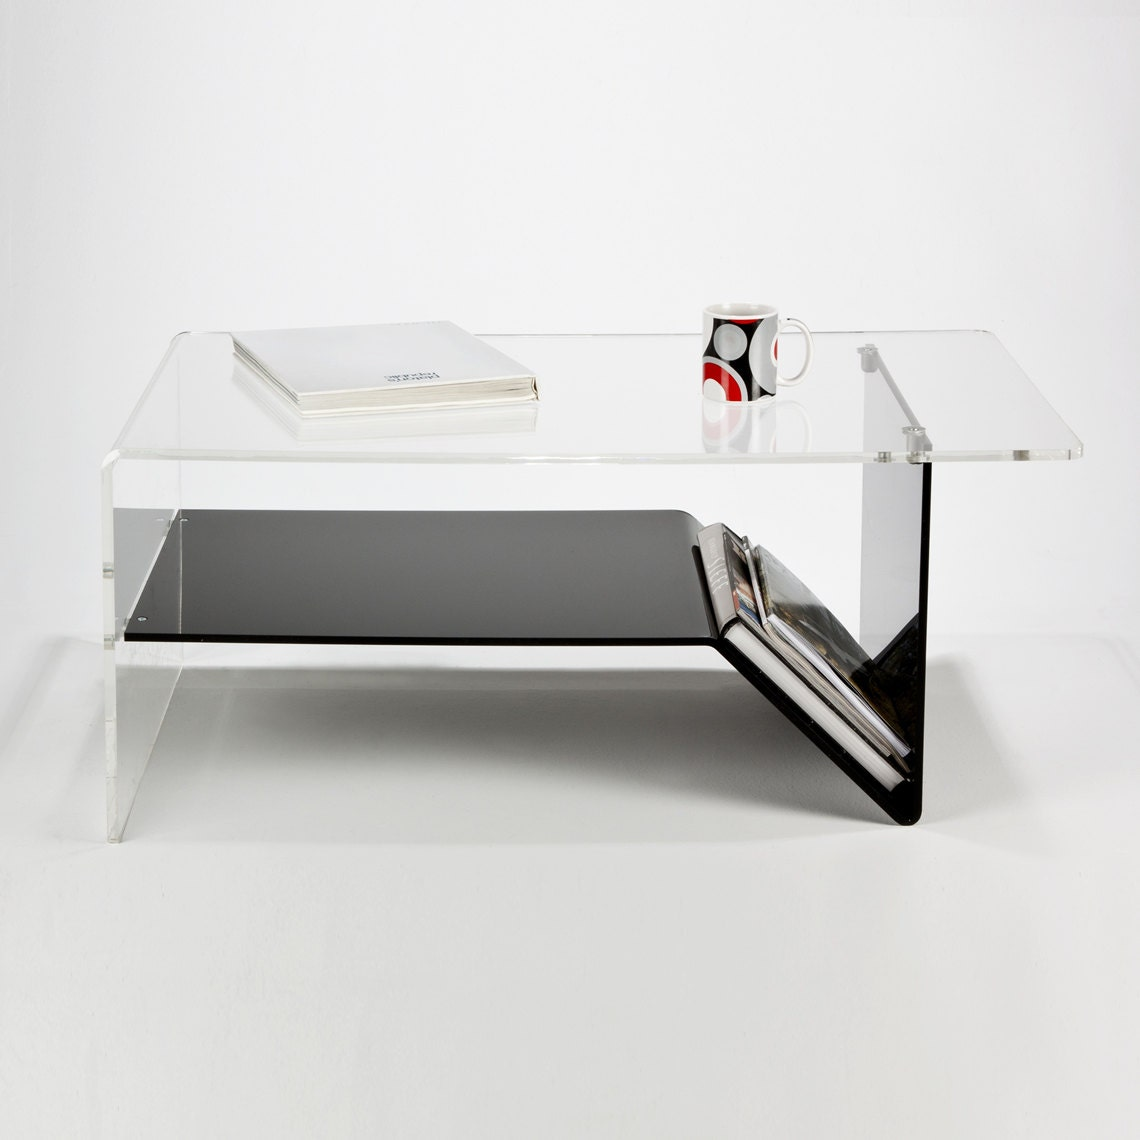 Perspex Acrylic Modern Coffee Table With Shelf Magazine